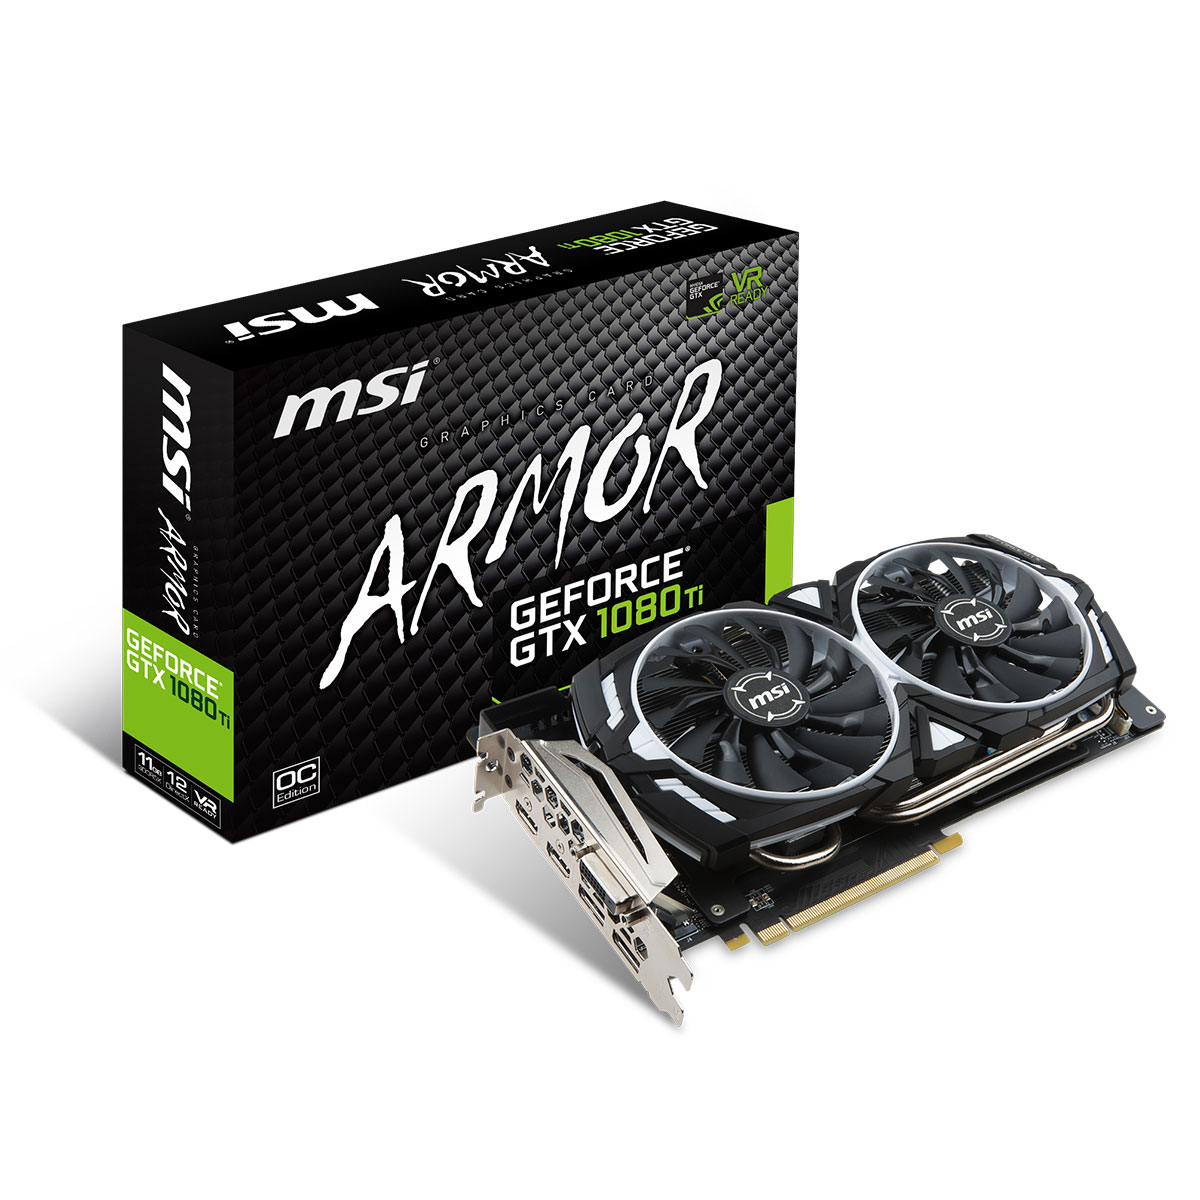 msi geforce gtx 1080 ti armor 11g oc carte graphique msi sur. Black Bedroom Furniture Sets. Home Design Ideas